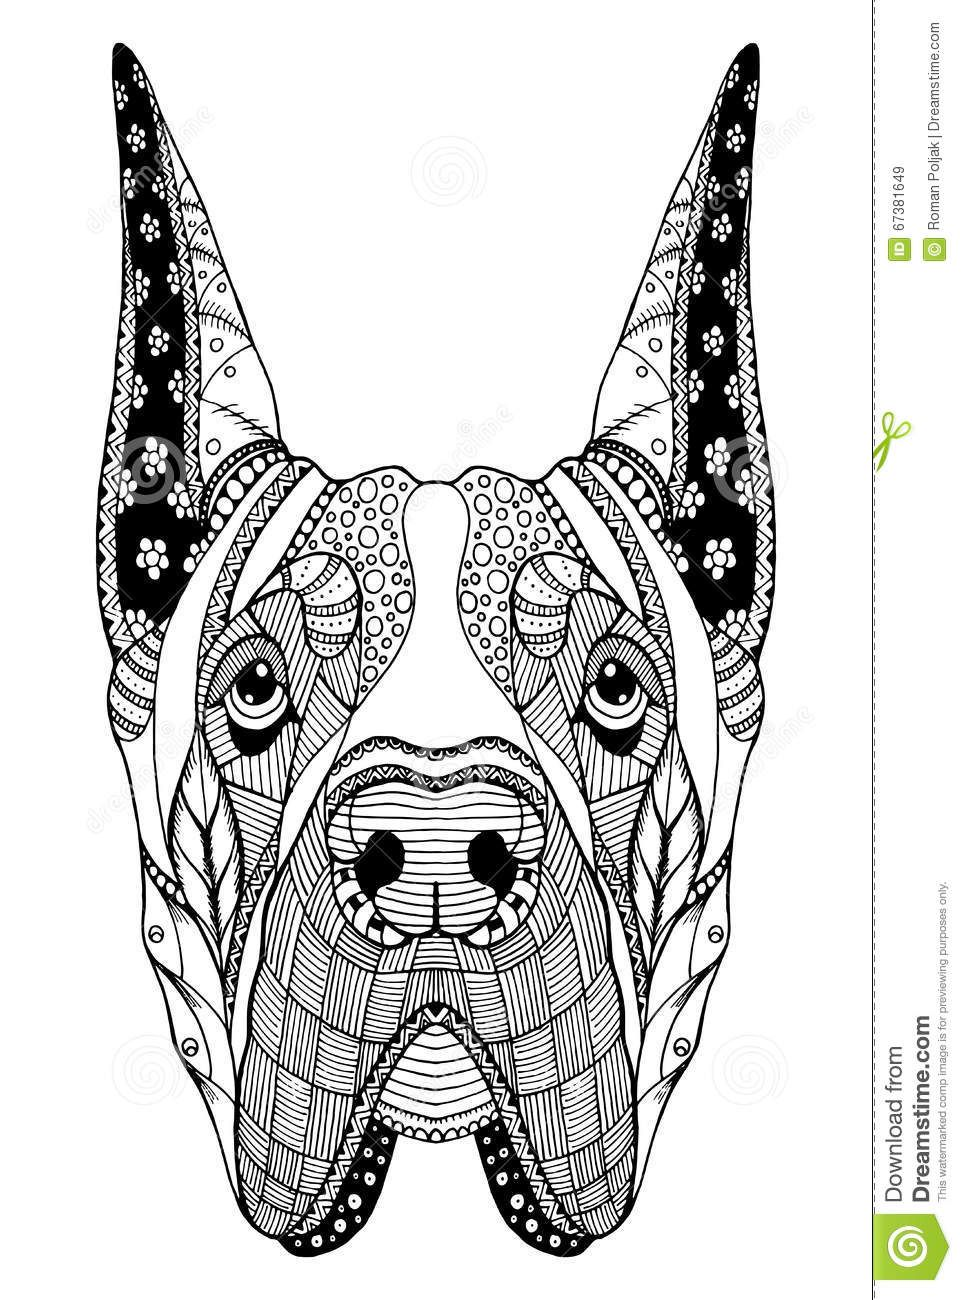 Pin By Calico Tam On Keep It In The Lines Great Dane Great Dane